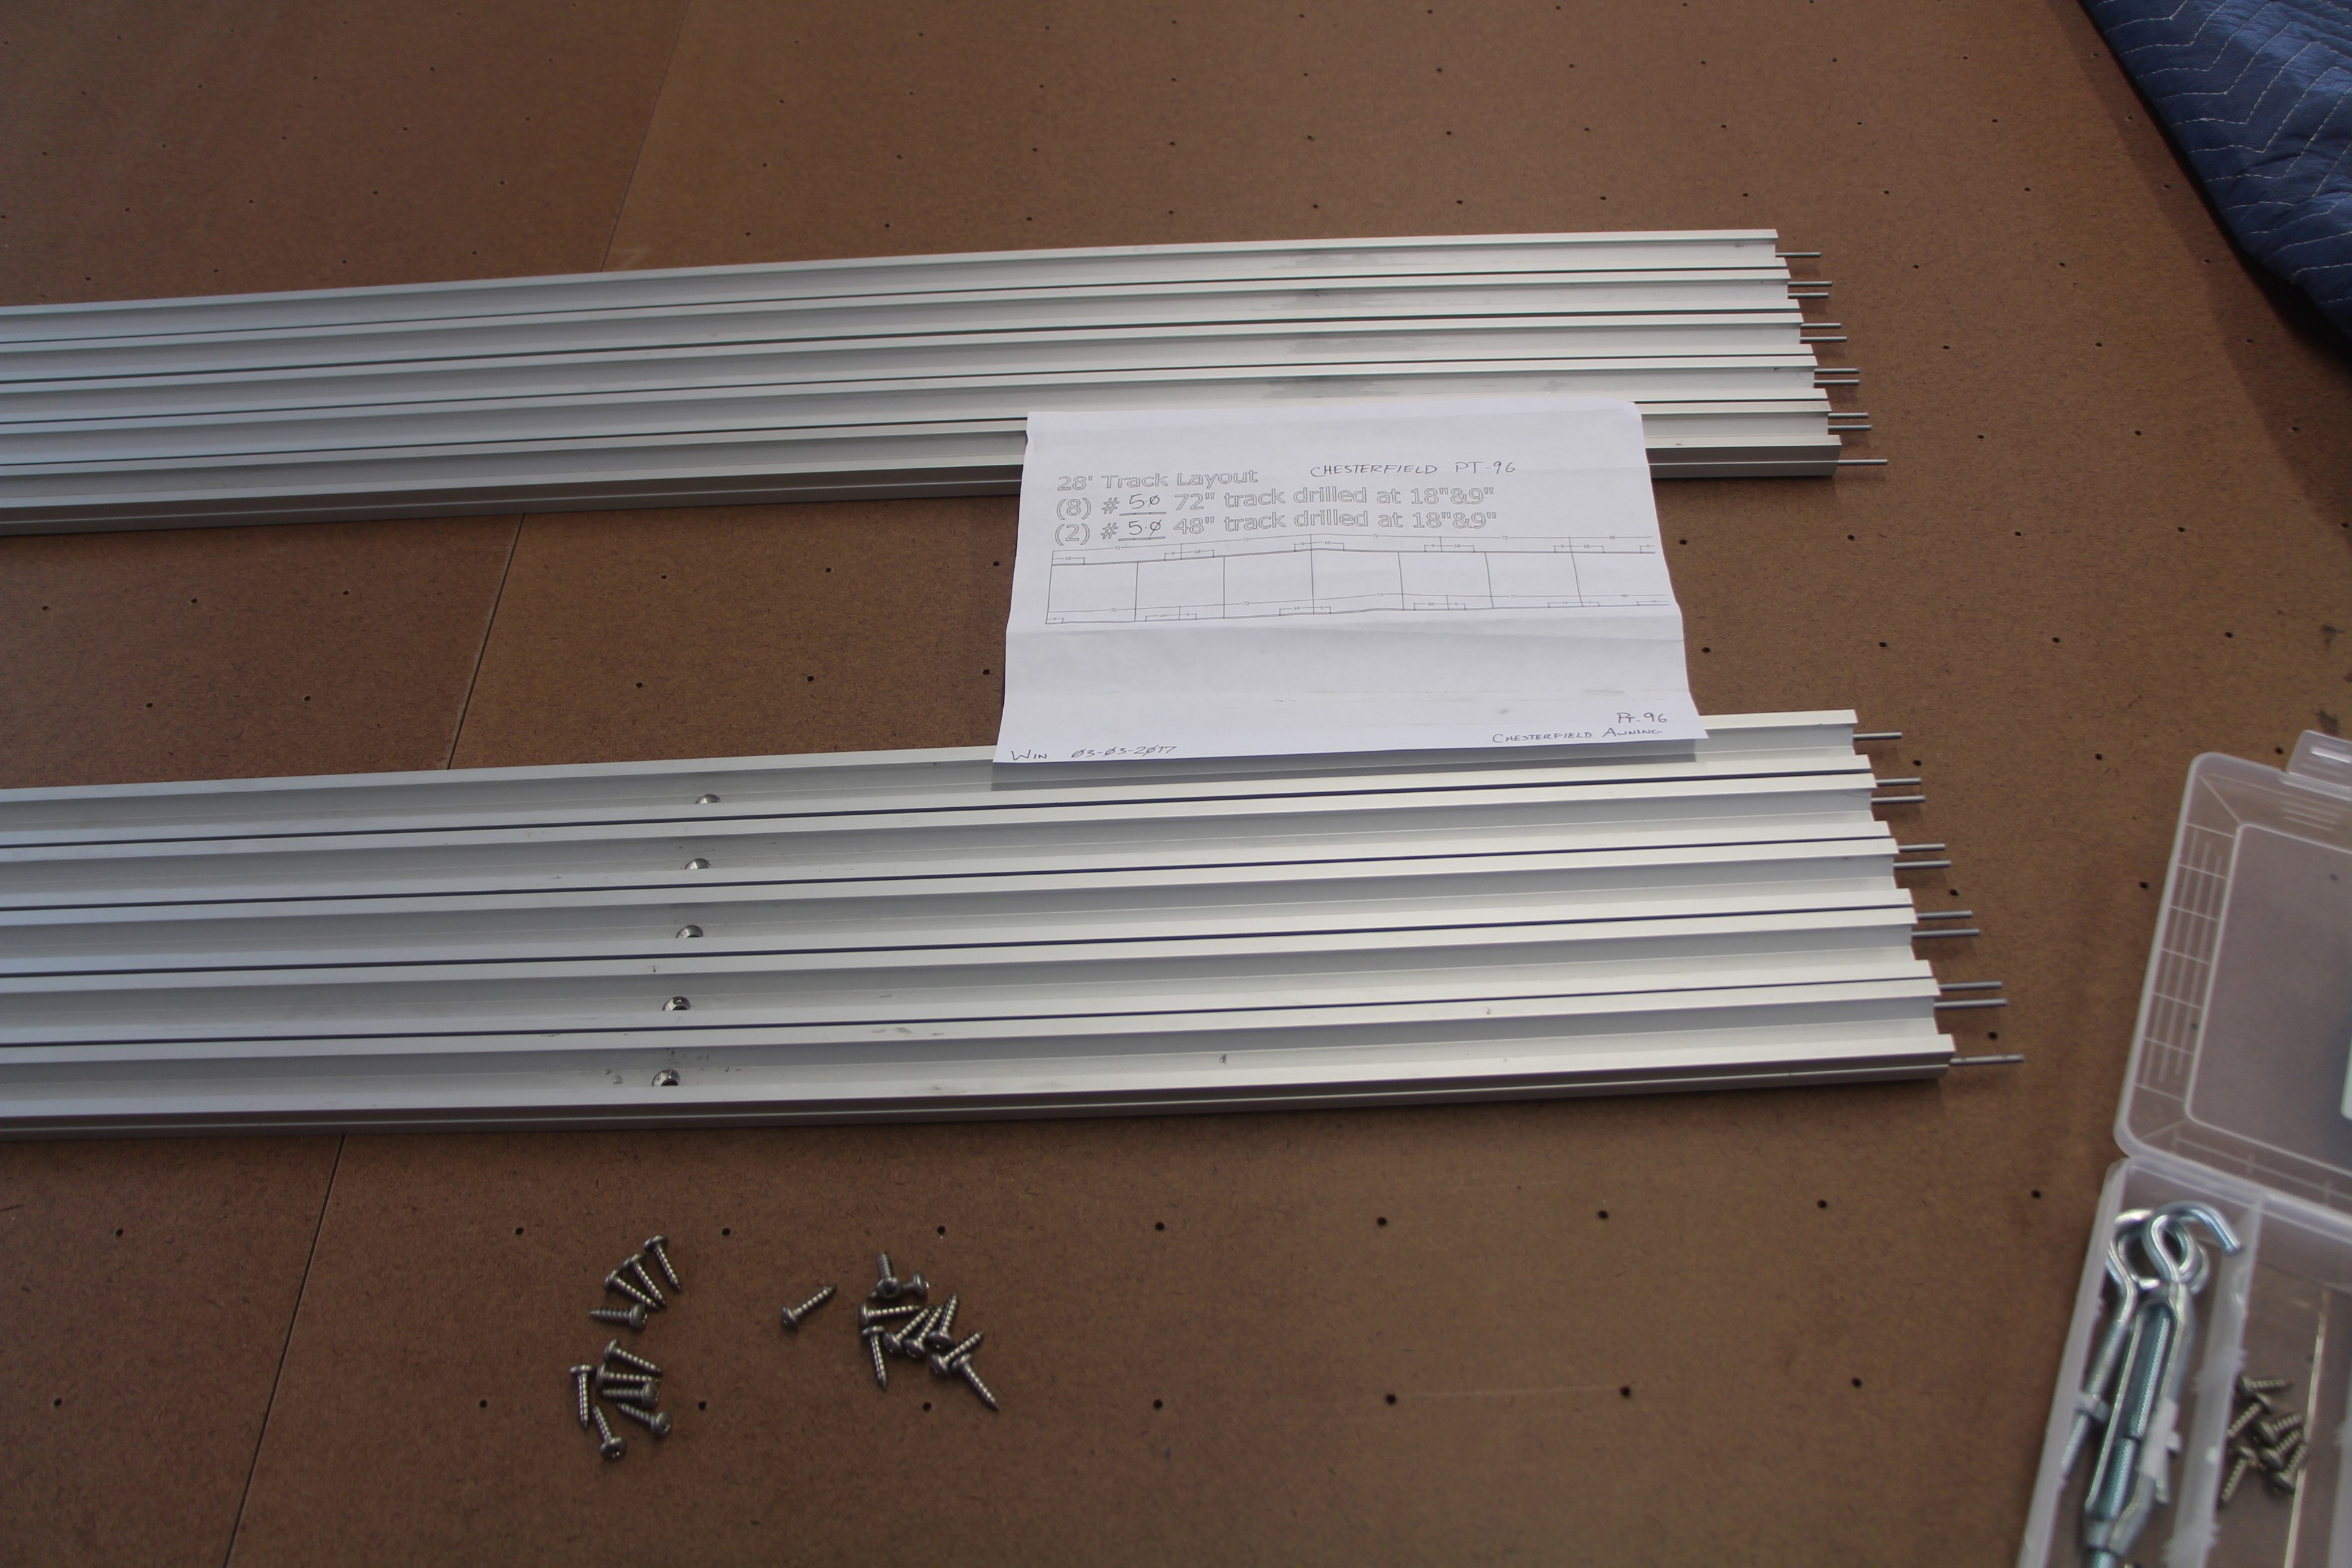 Carlson Design custom extruded aluminum track ready to be installed to the Phillocraft table.